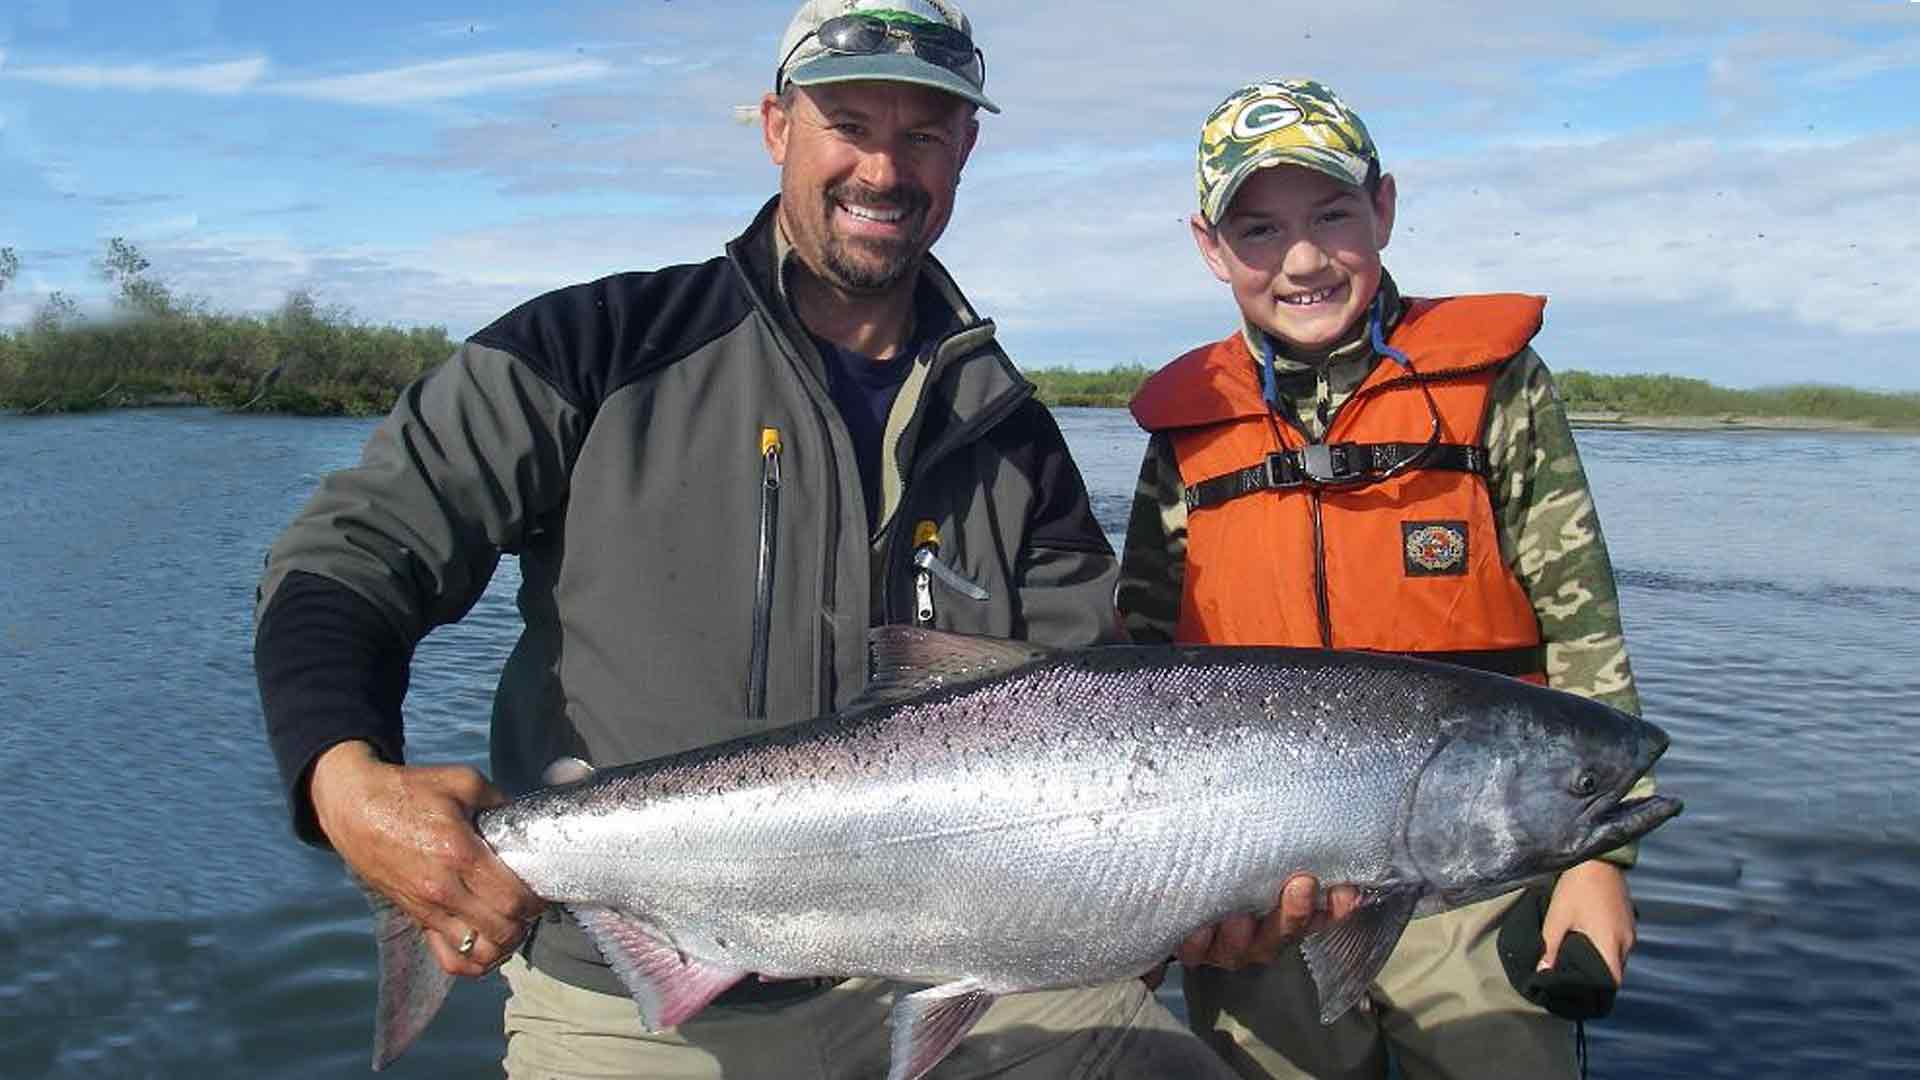 Father and son with King Salmon